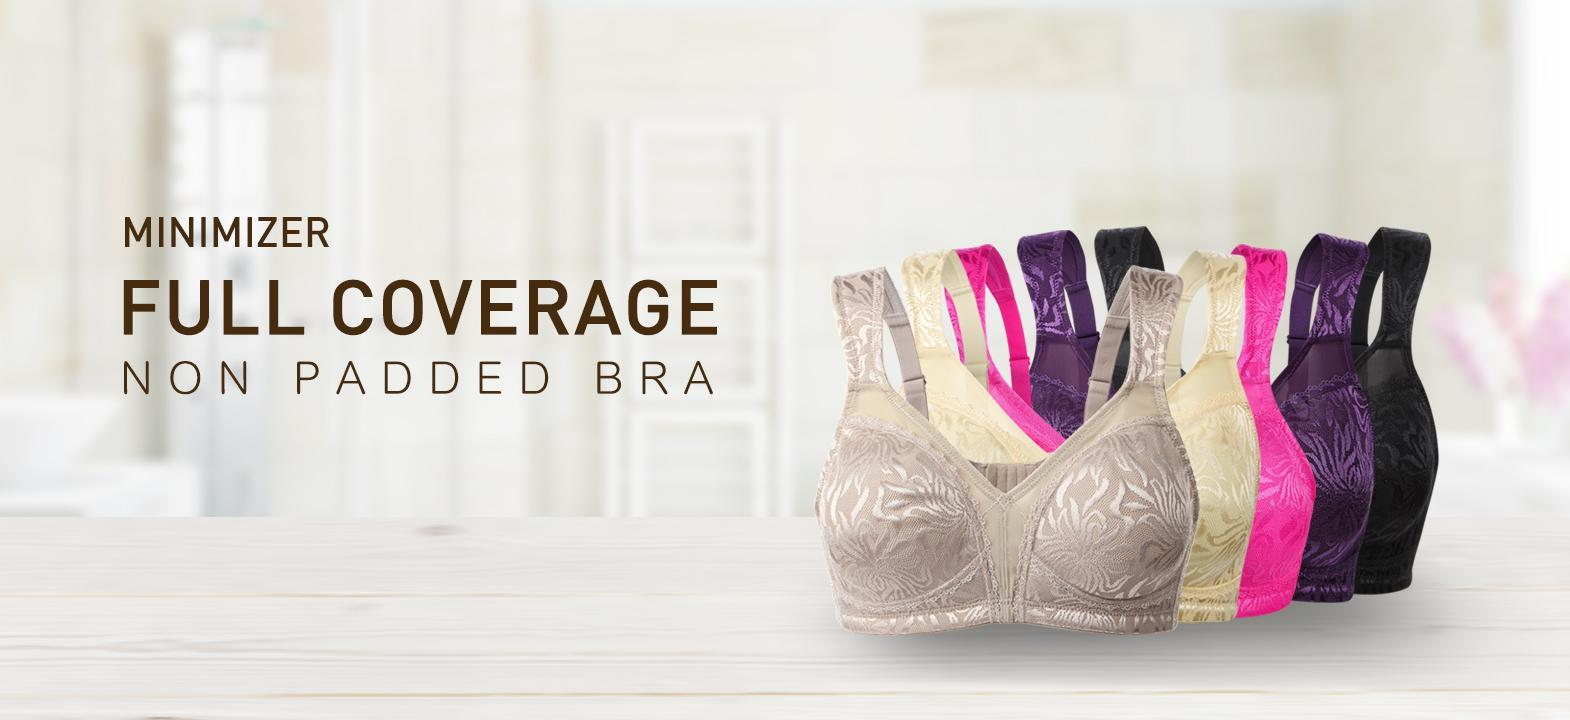 bra-to-choose-from